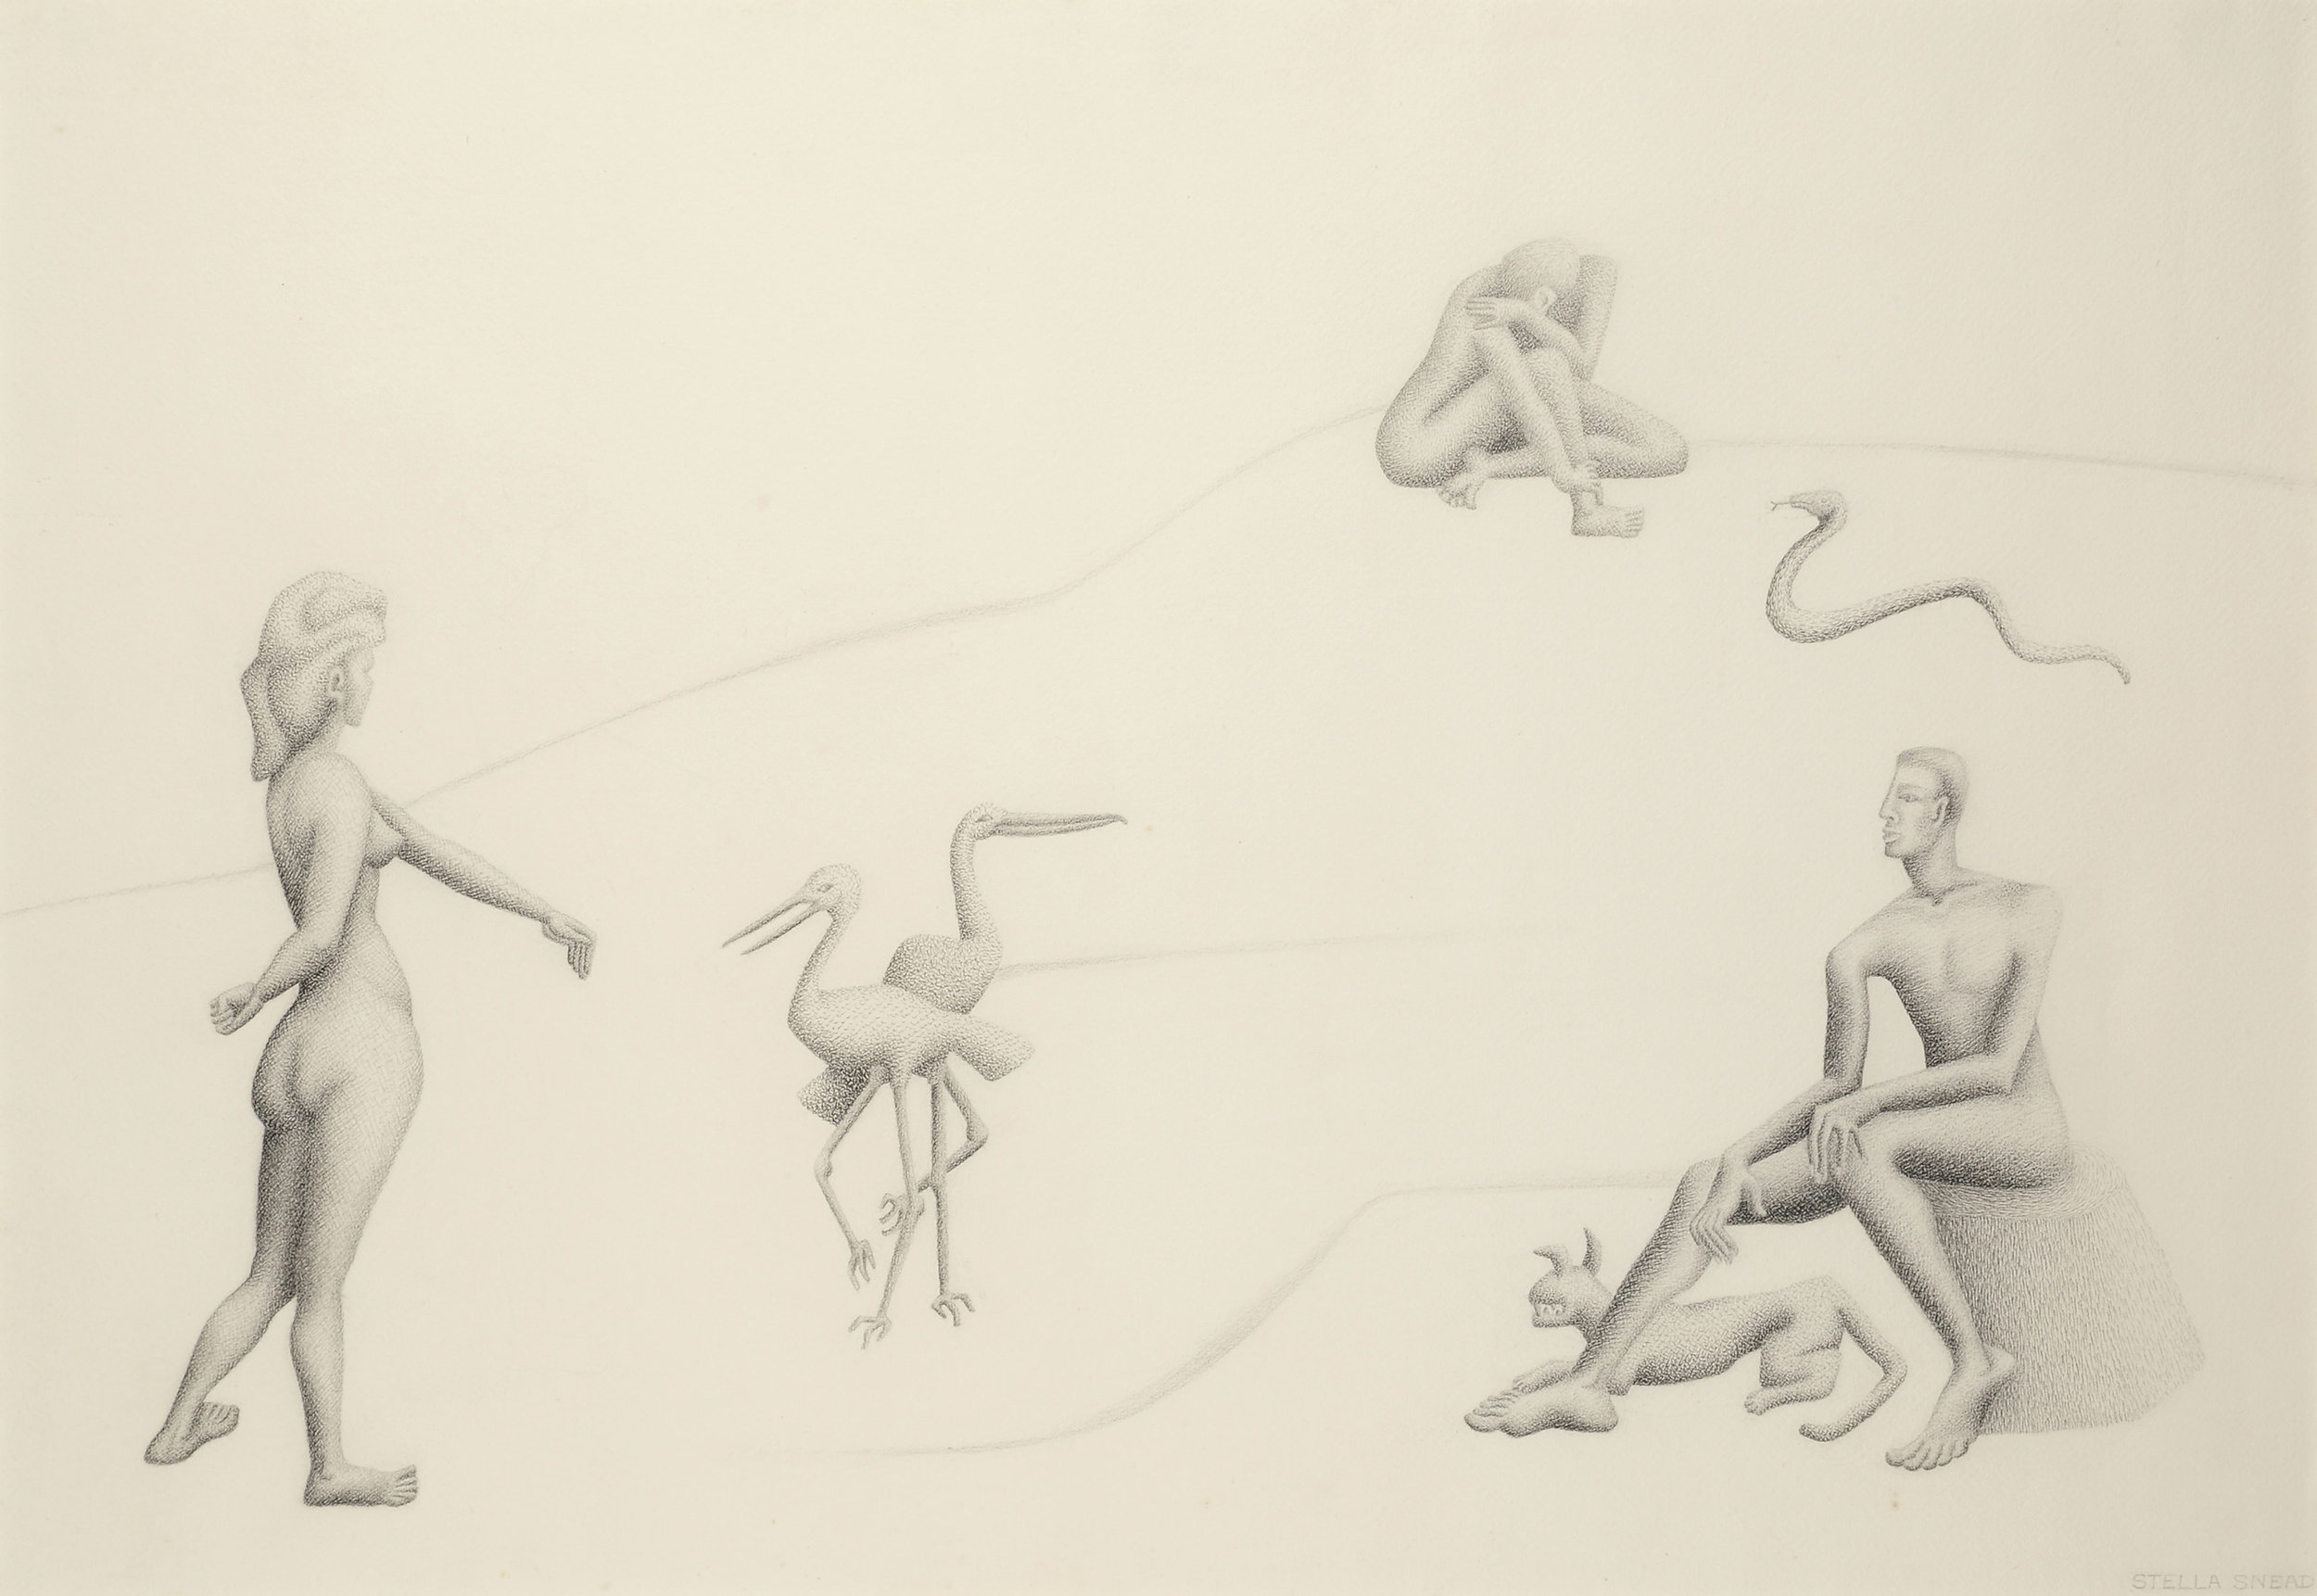 Untitled (figures with animals) , charcoal and pencil on paper, 27 x 36